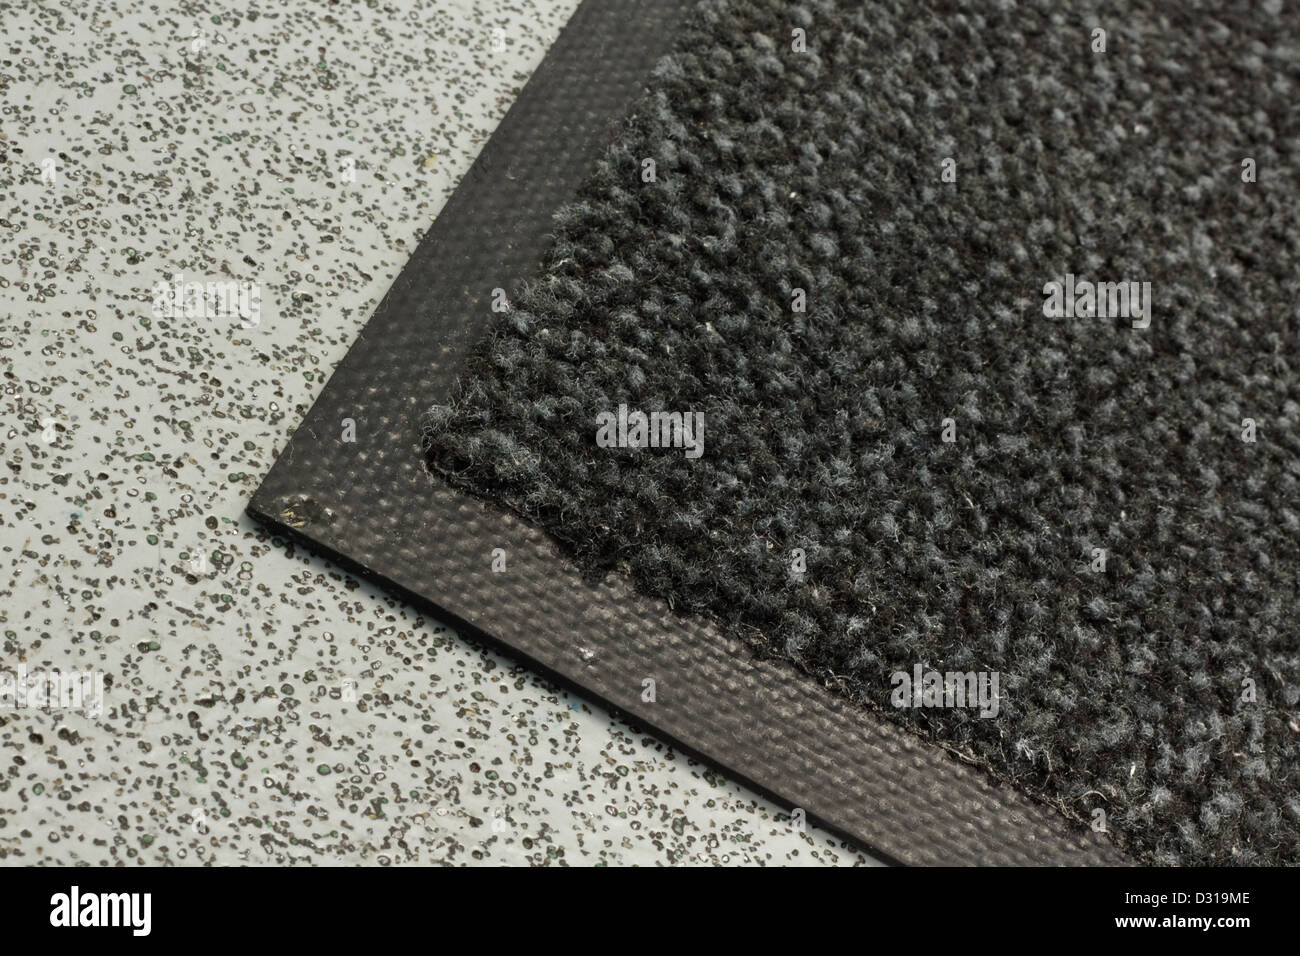 Industrial dust mat used in offices and warehouses or any commercial building - Stock Image